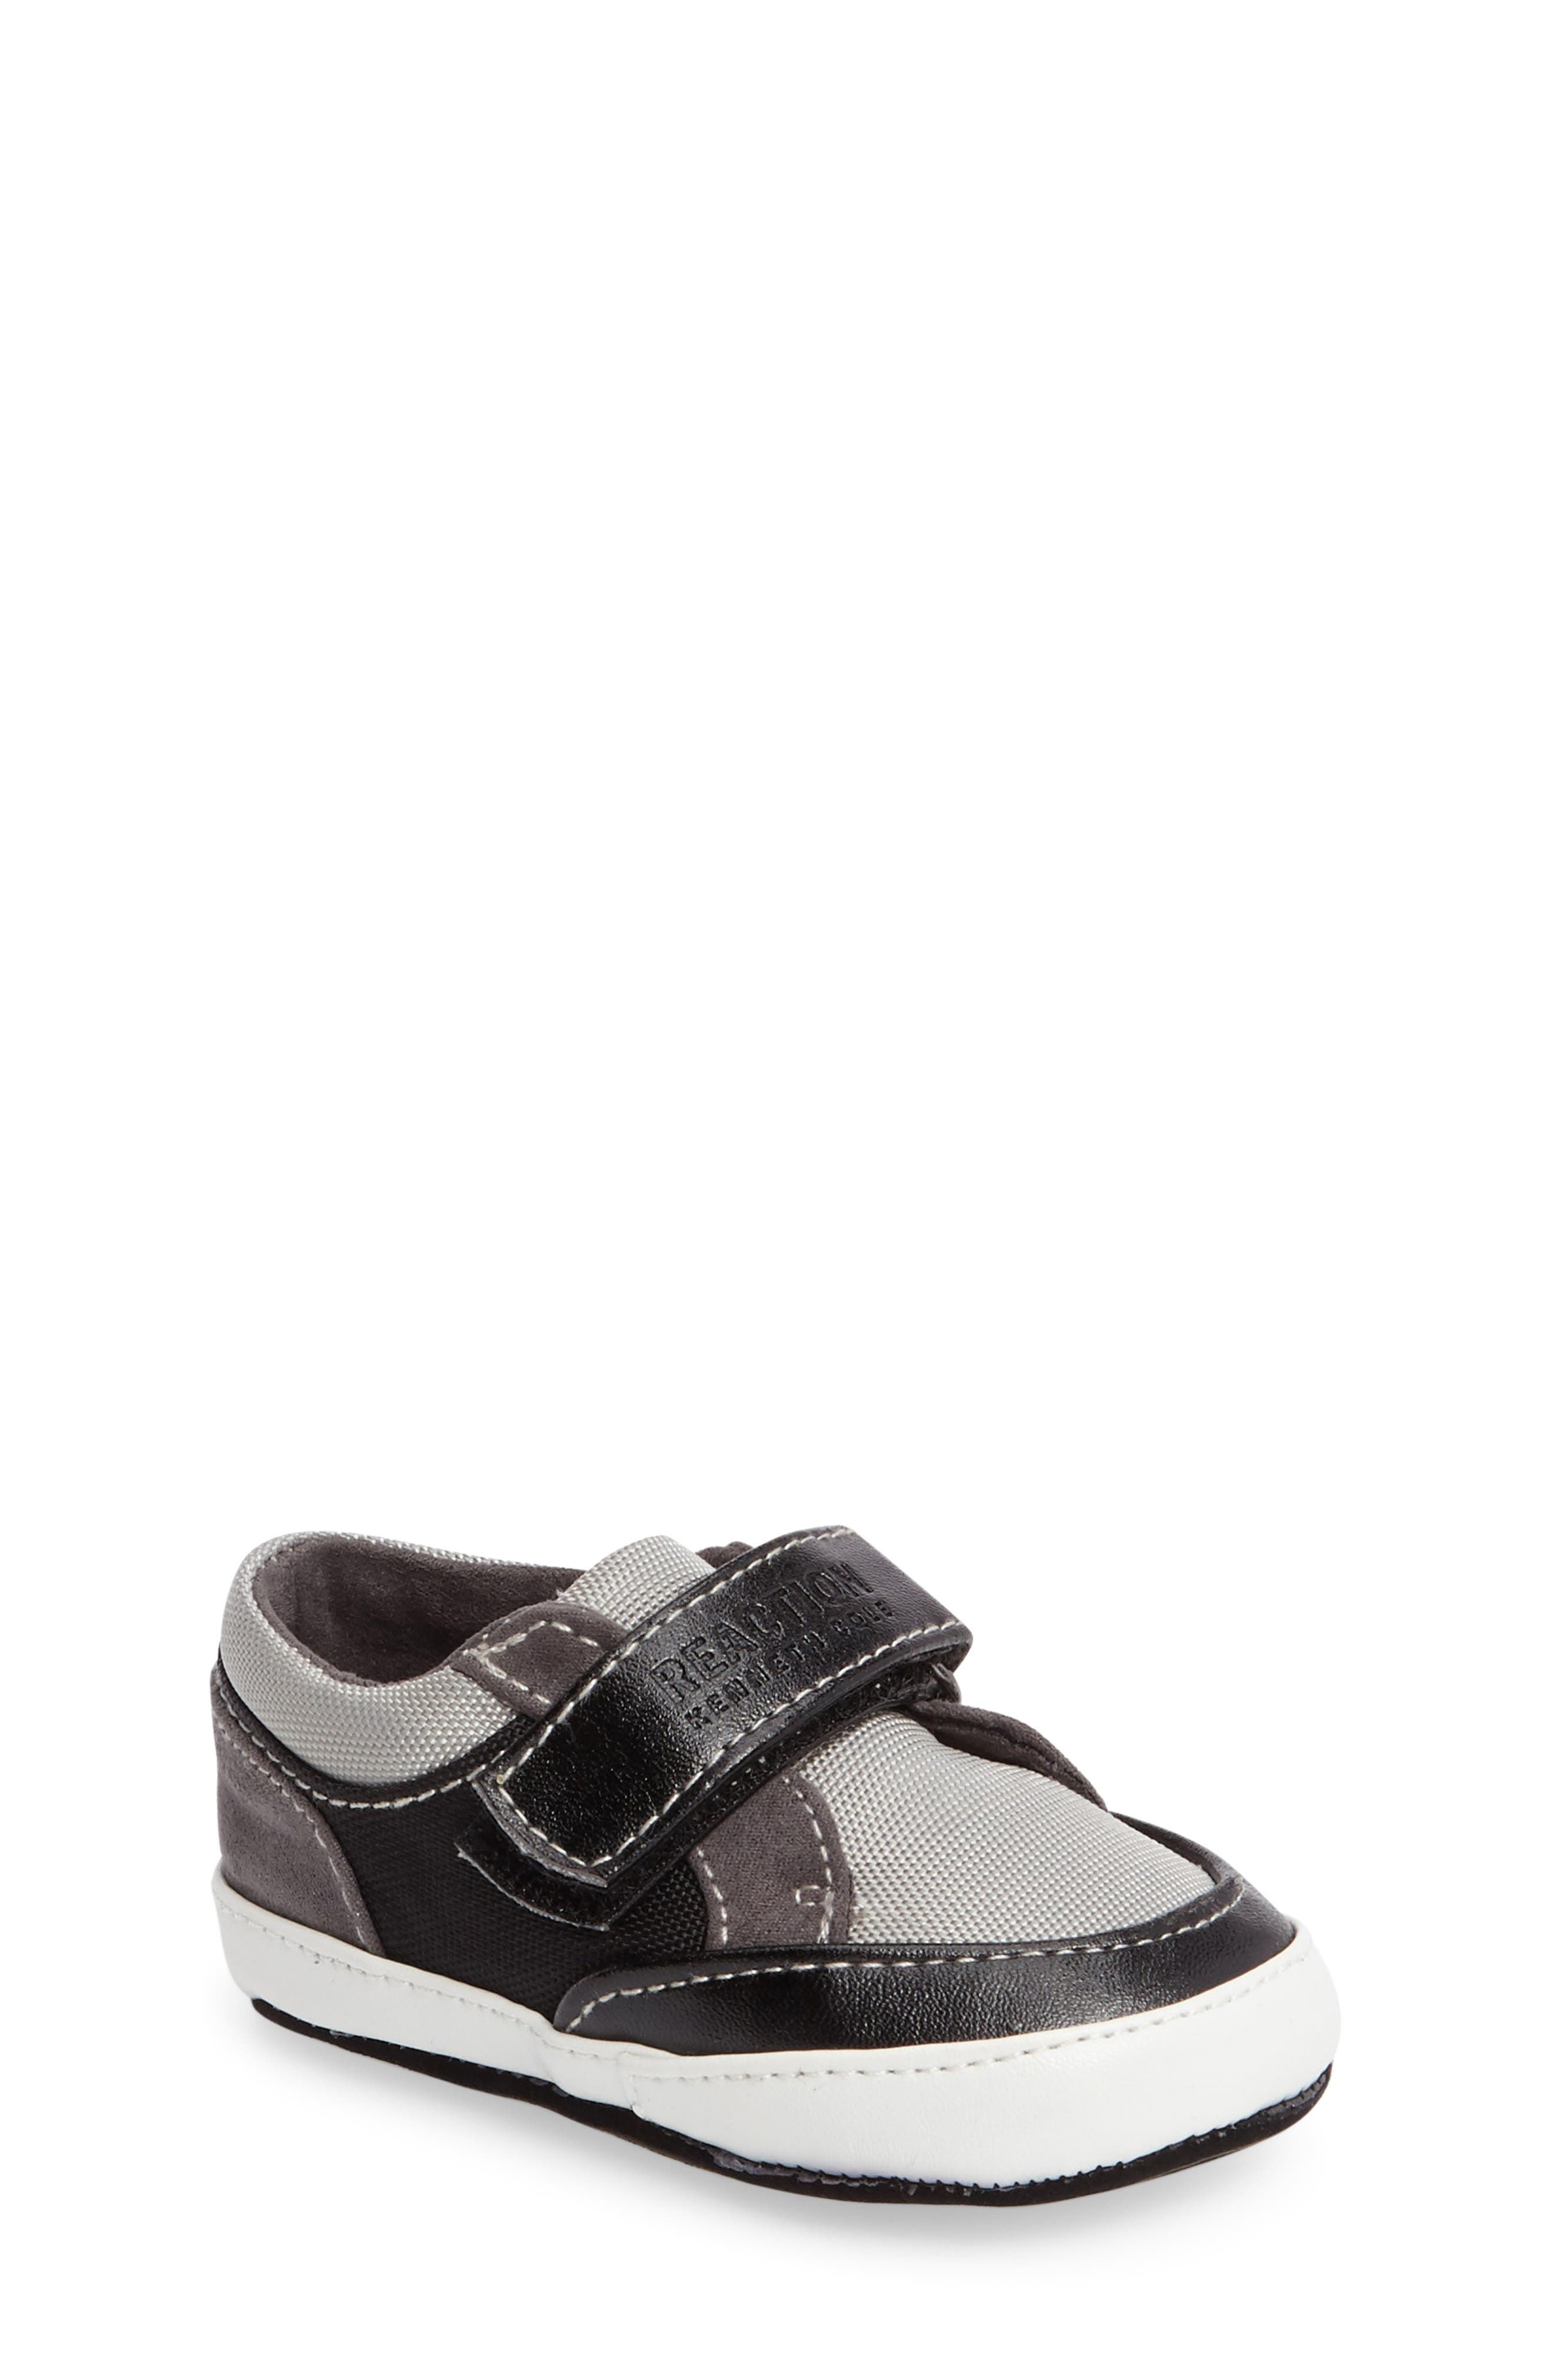 Alternate Image 1 Selected - Kenneth Cole New York Danny Sneaker (Baby)